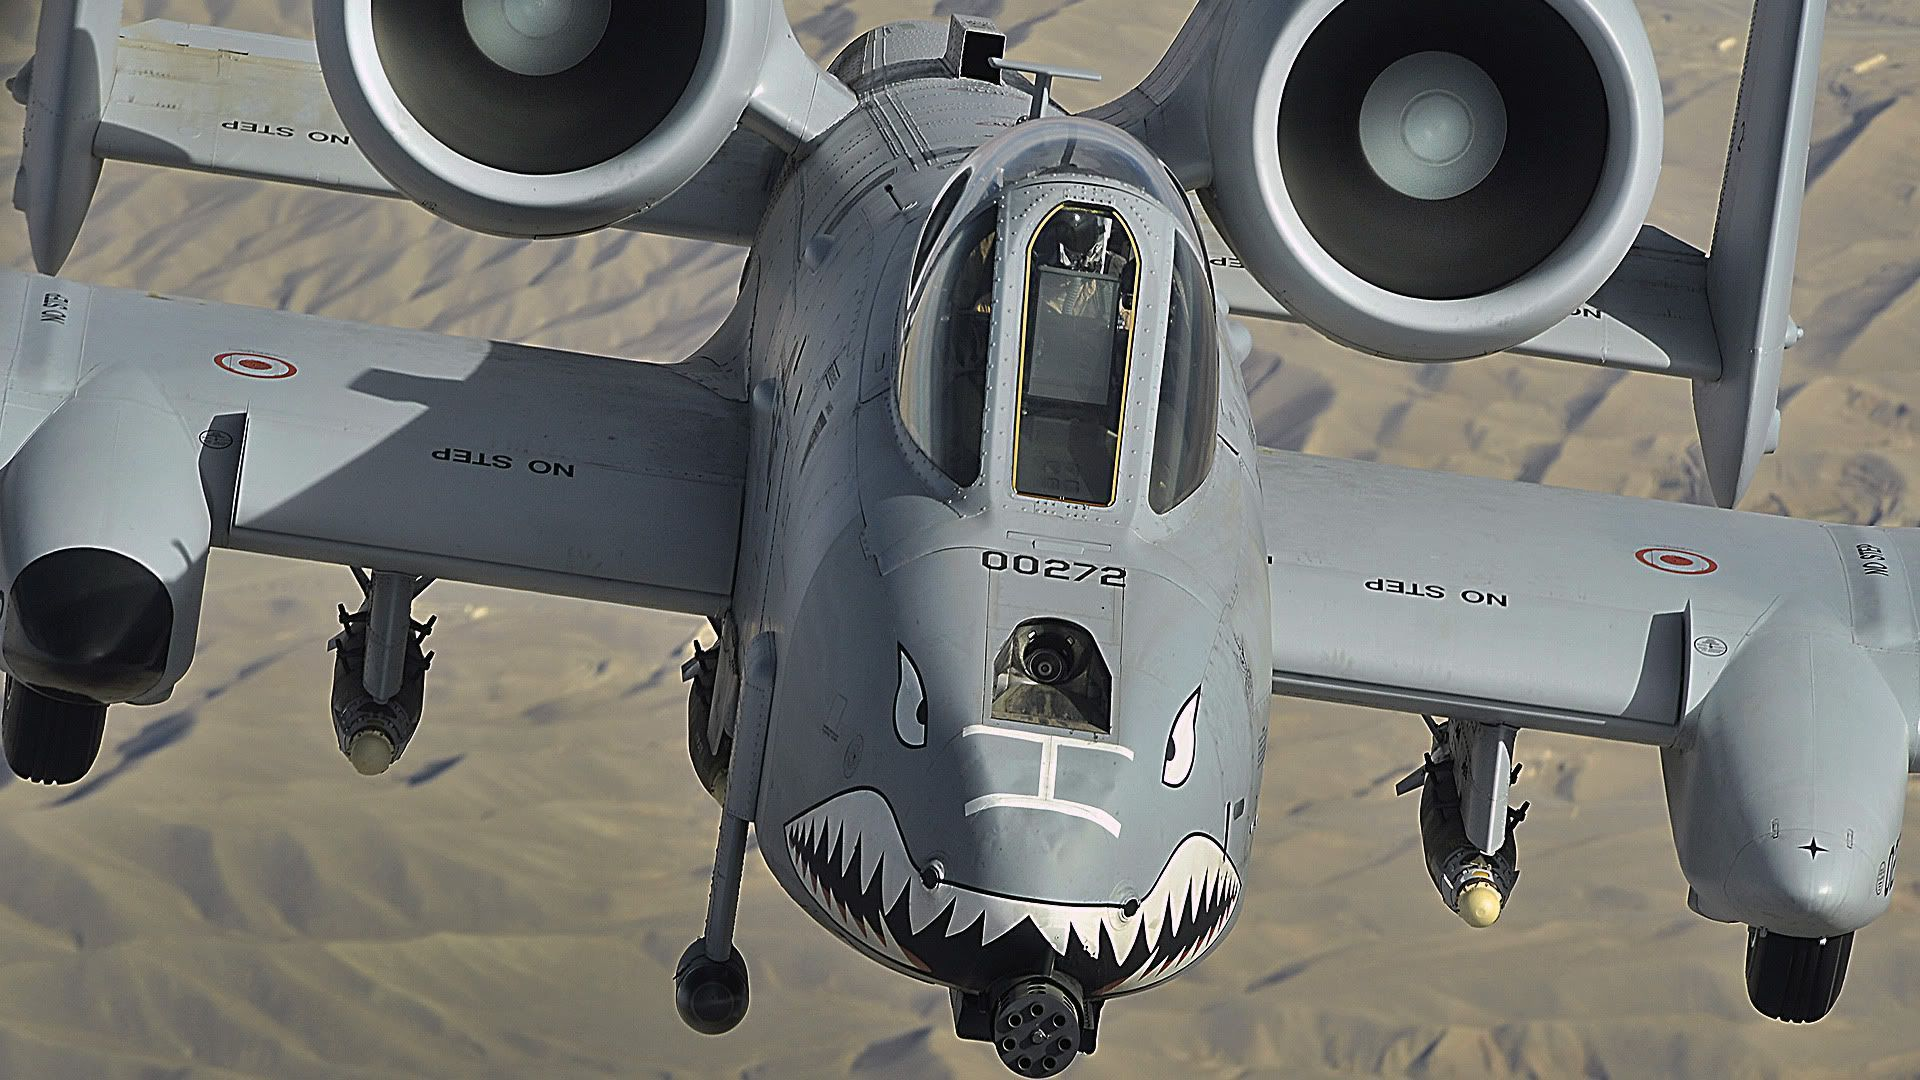 A 10 Thunderbolt Warthog Wallpaper 1920x1080 Hot Hd Wallpaper Aircraft Military Aircraft A10 Warthog